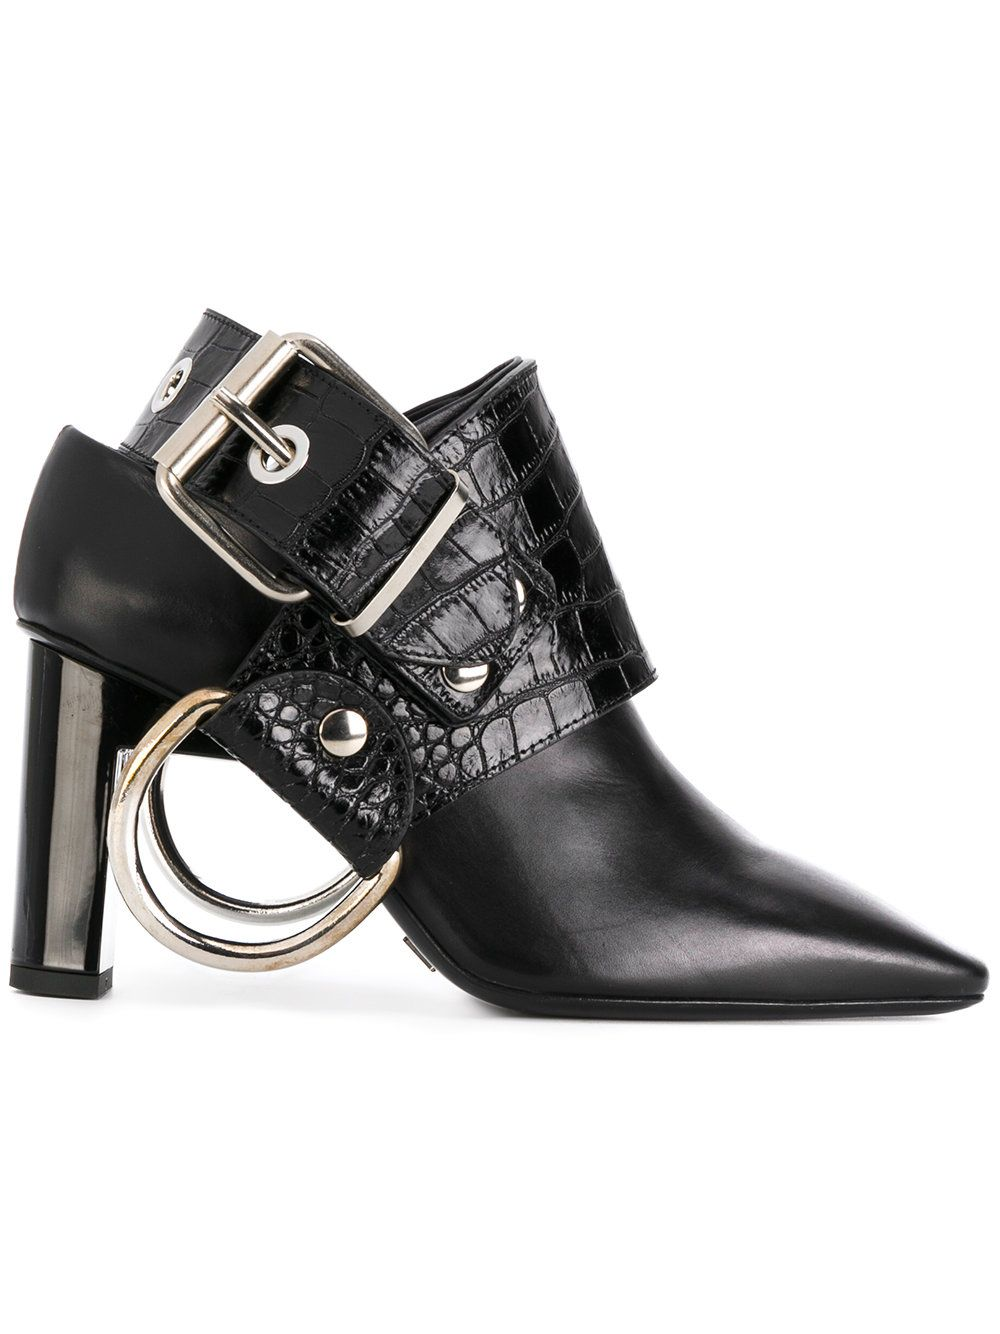 366a1bd0d6a15 Alyx buckle detail ankle boots